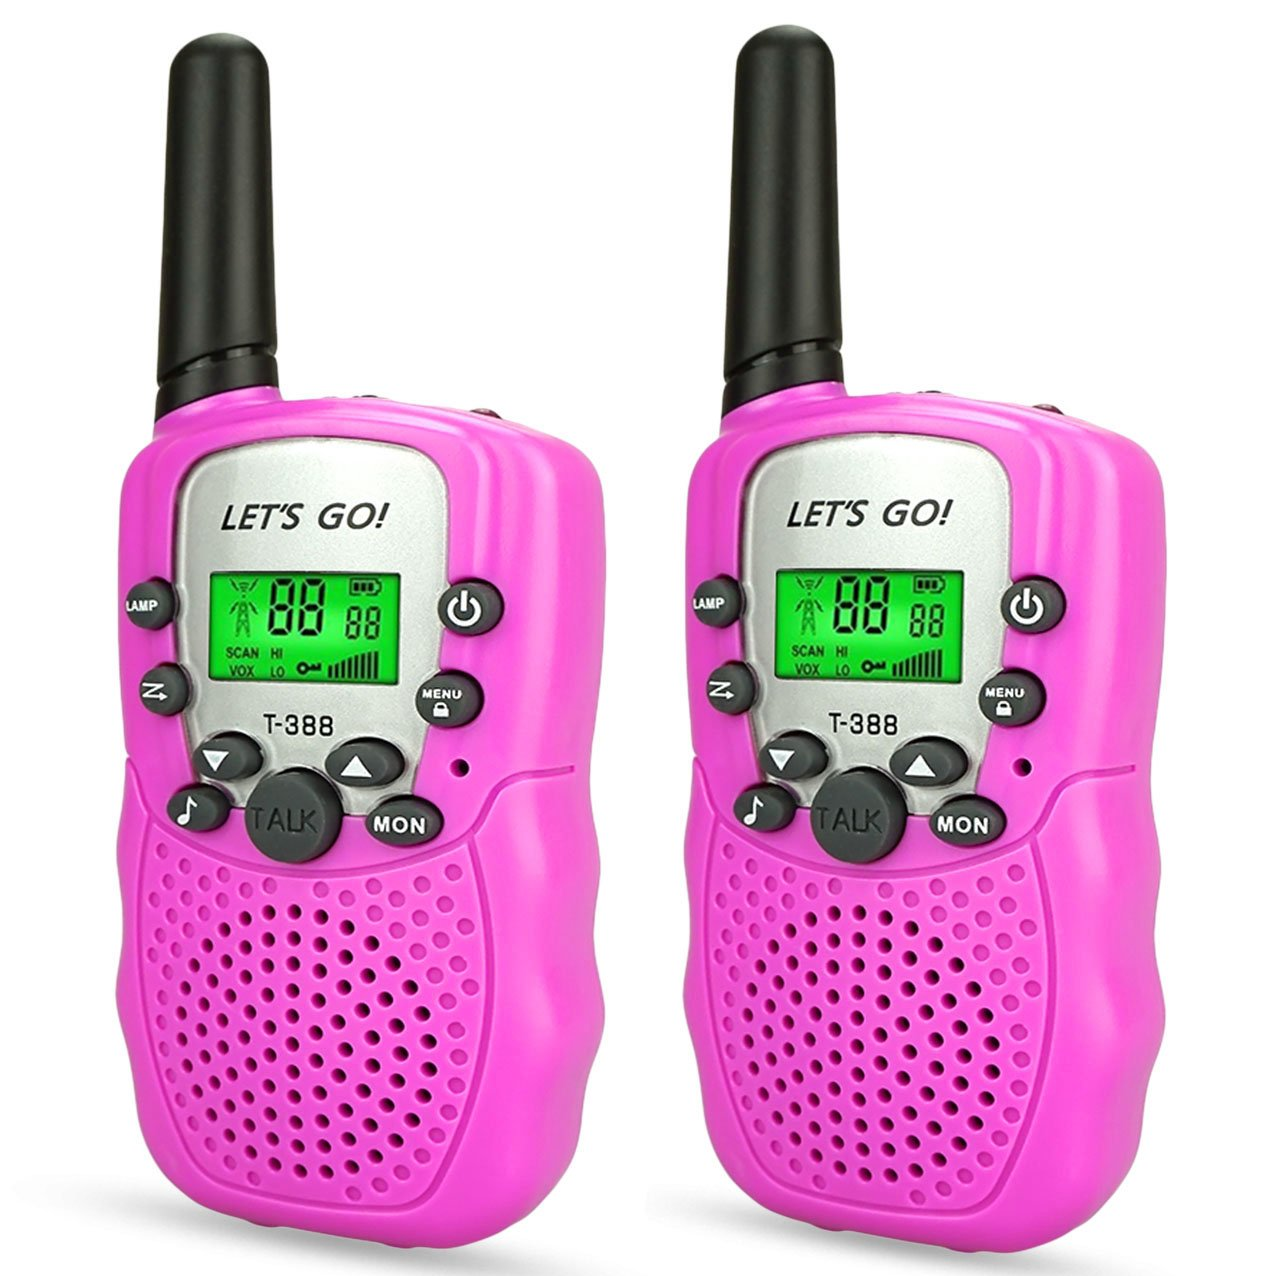 Amazon DIMY DJ888 Walkies Talkies For Kids Girls Toys Age 3 12 Year Old Girl Outdoor Pink Games